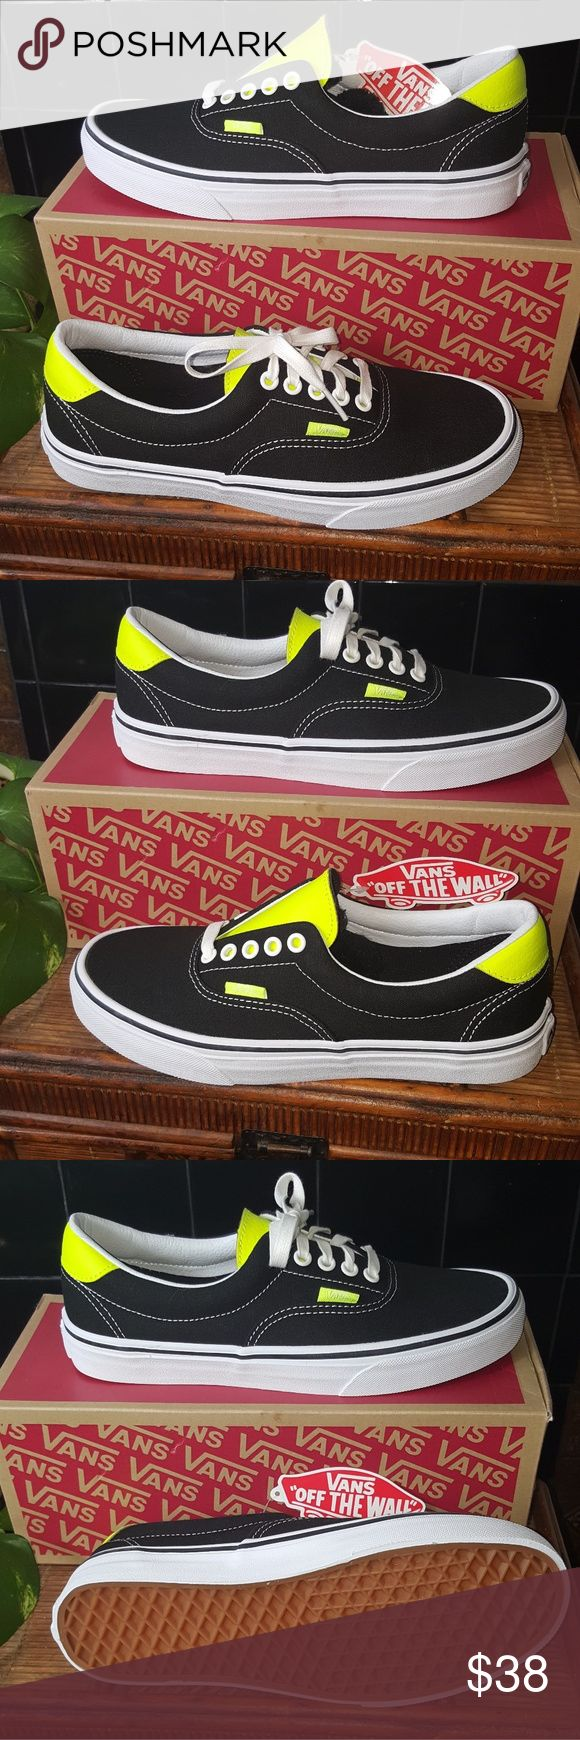 Black authentic neon leather Vans The black authentic sneaker with a Twist of a neon yellow tongue and heel. Absolutely awesome! I want to keep these two! These are absolutely rocking! Size 8.5 women and 7.0 men.  @barbarajeannef Vans Shoes Sneakers